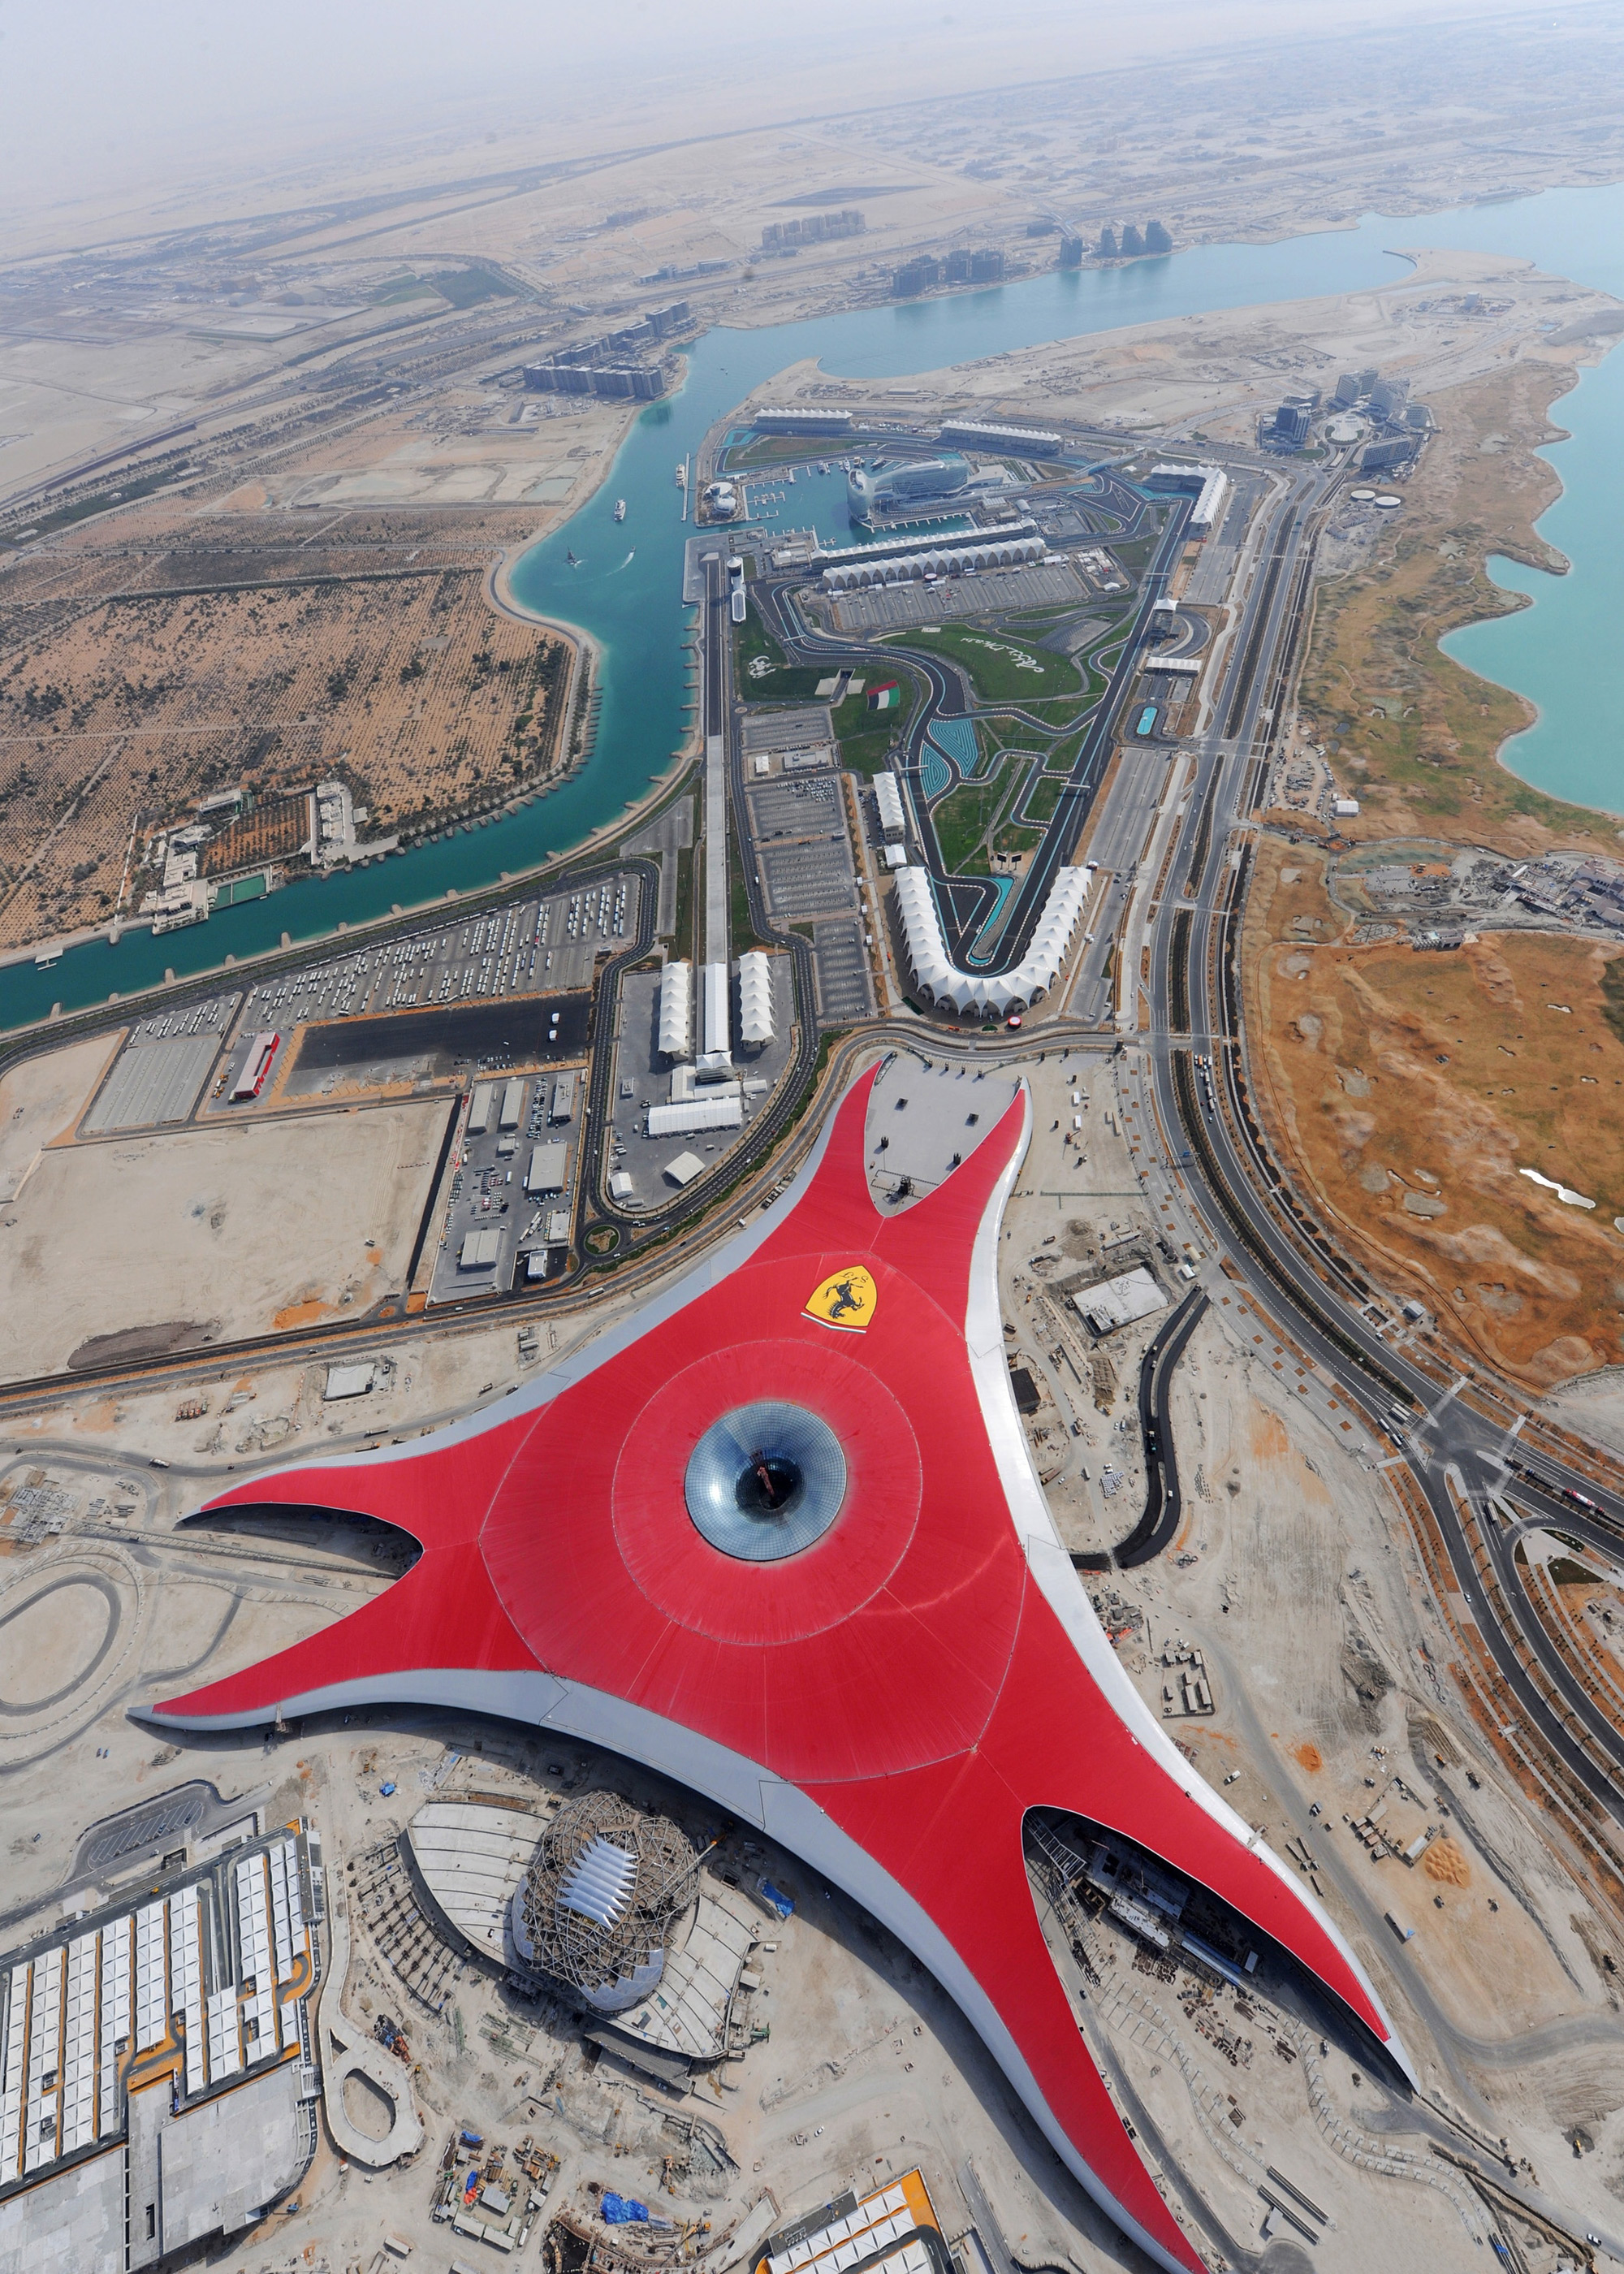 ferrari world abu dhabi opening in 2010. Black Bedroom Furniture Sets. Home Design Ideas